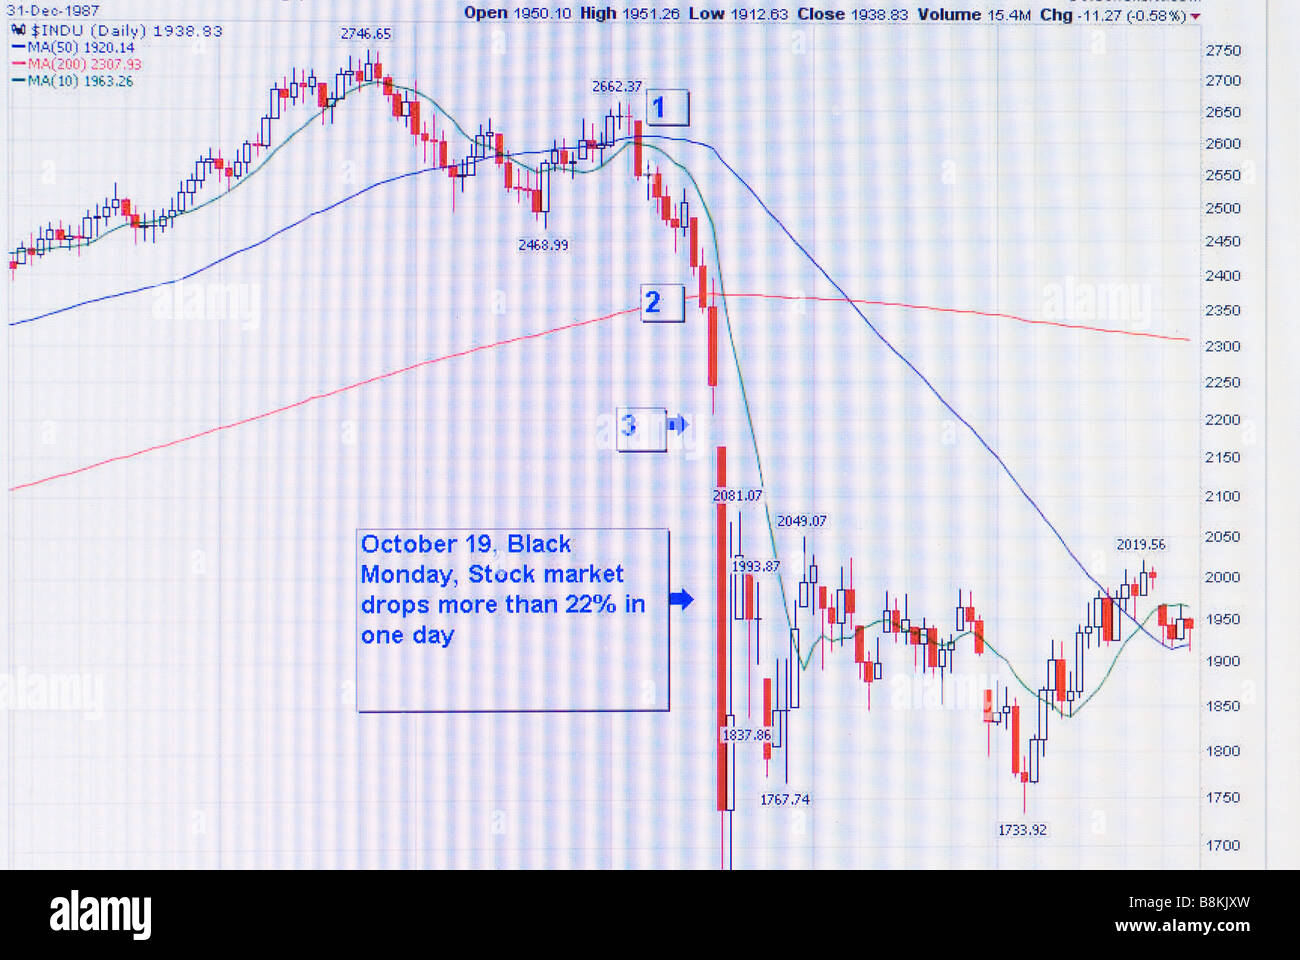 Stock market Graph of Black Monday October 19th showing market crash on a computer screen - Stock Image